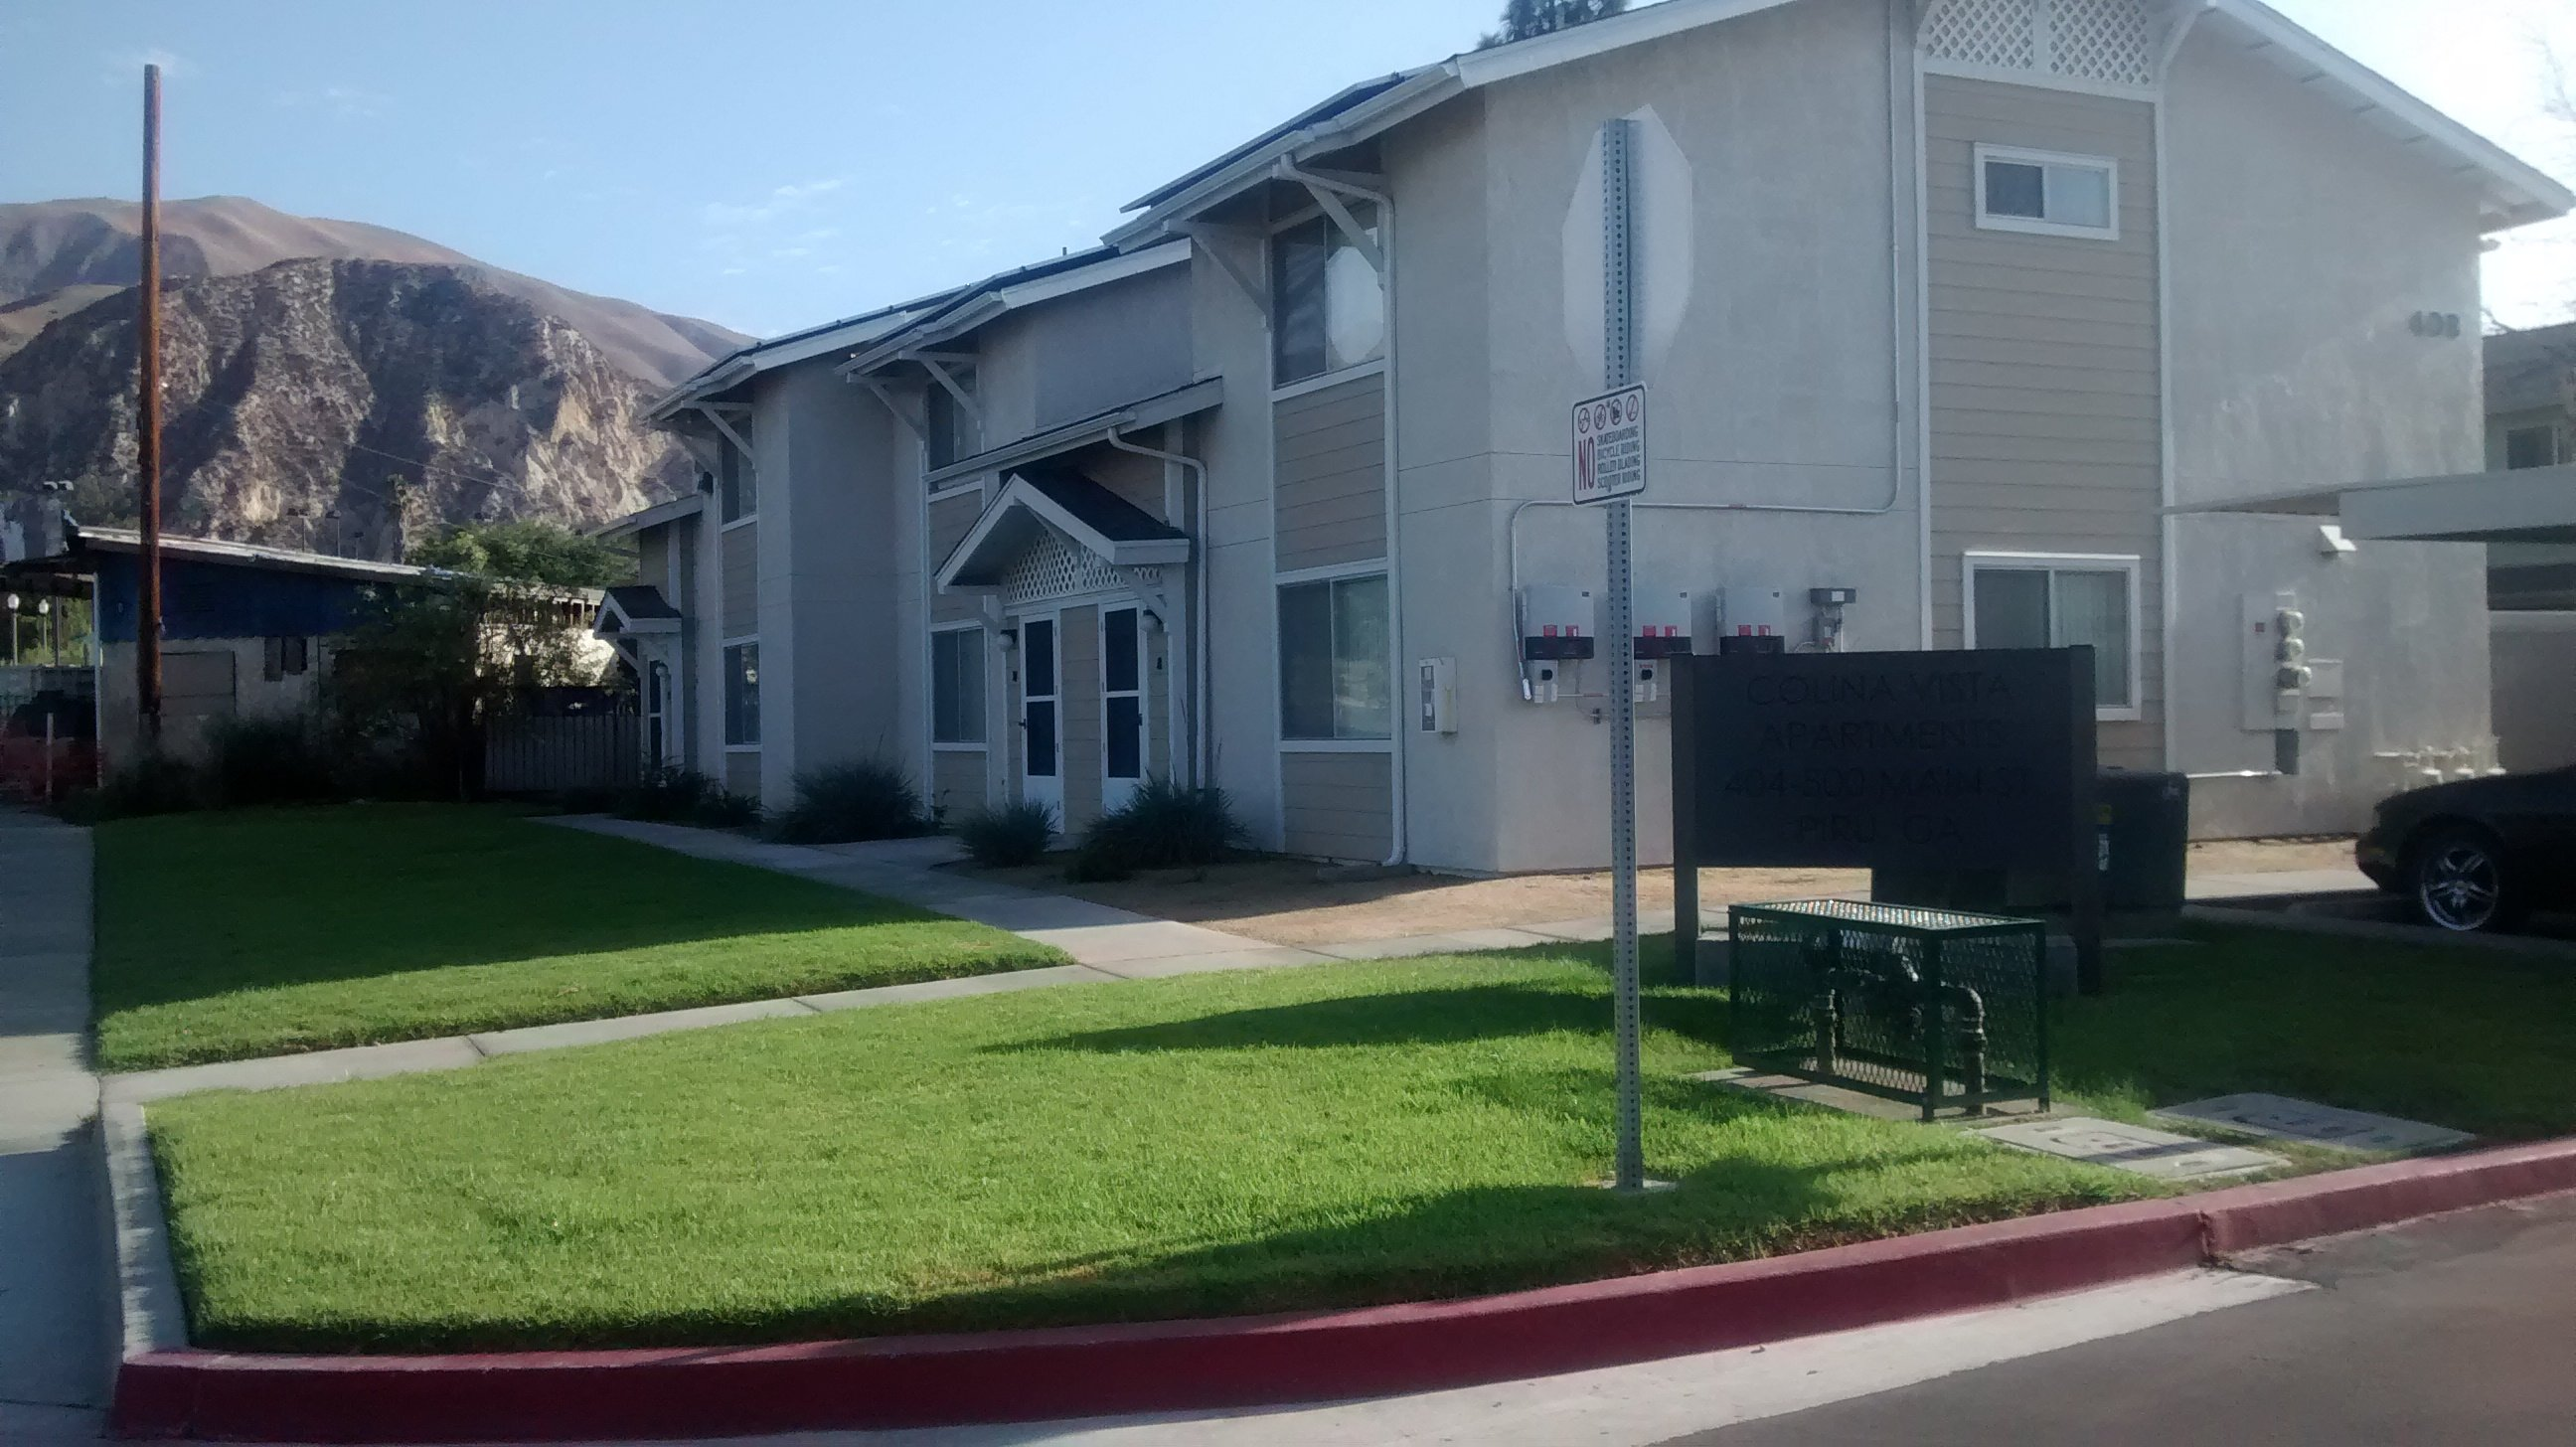 Colina Vista Apartments